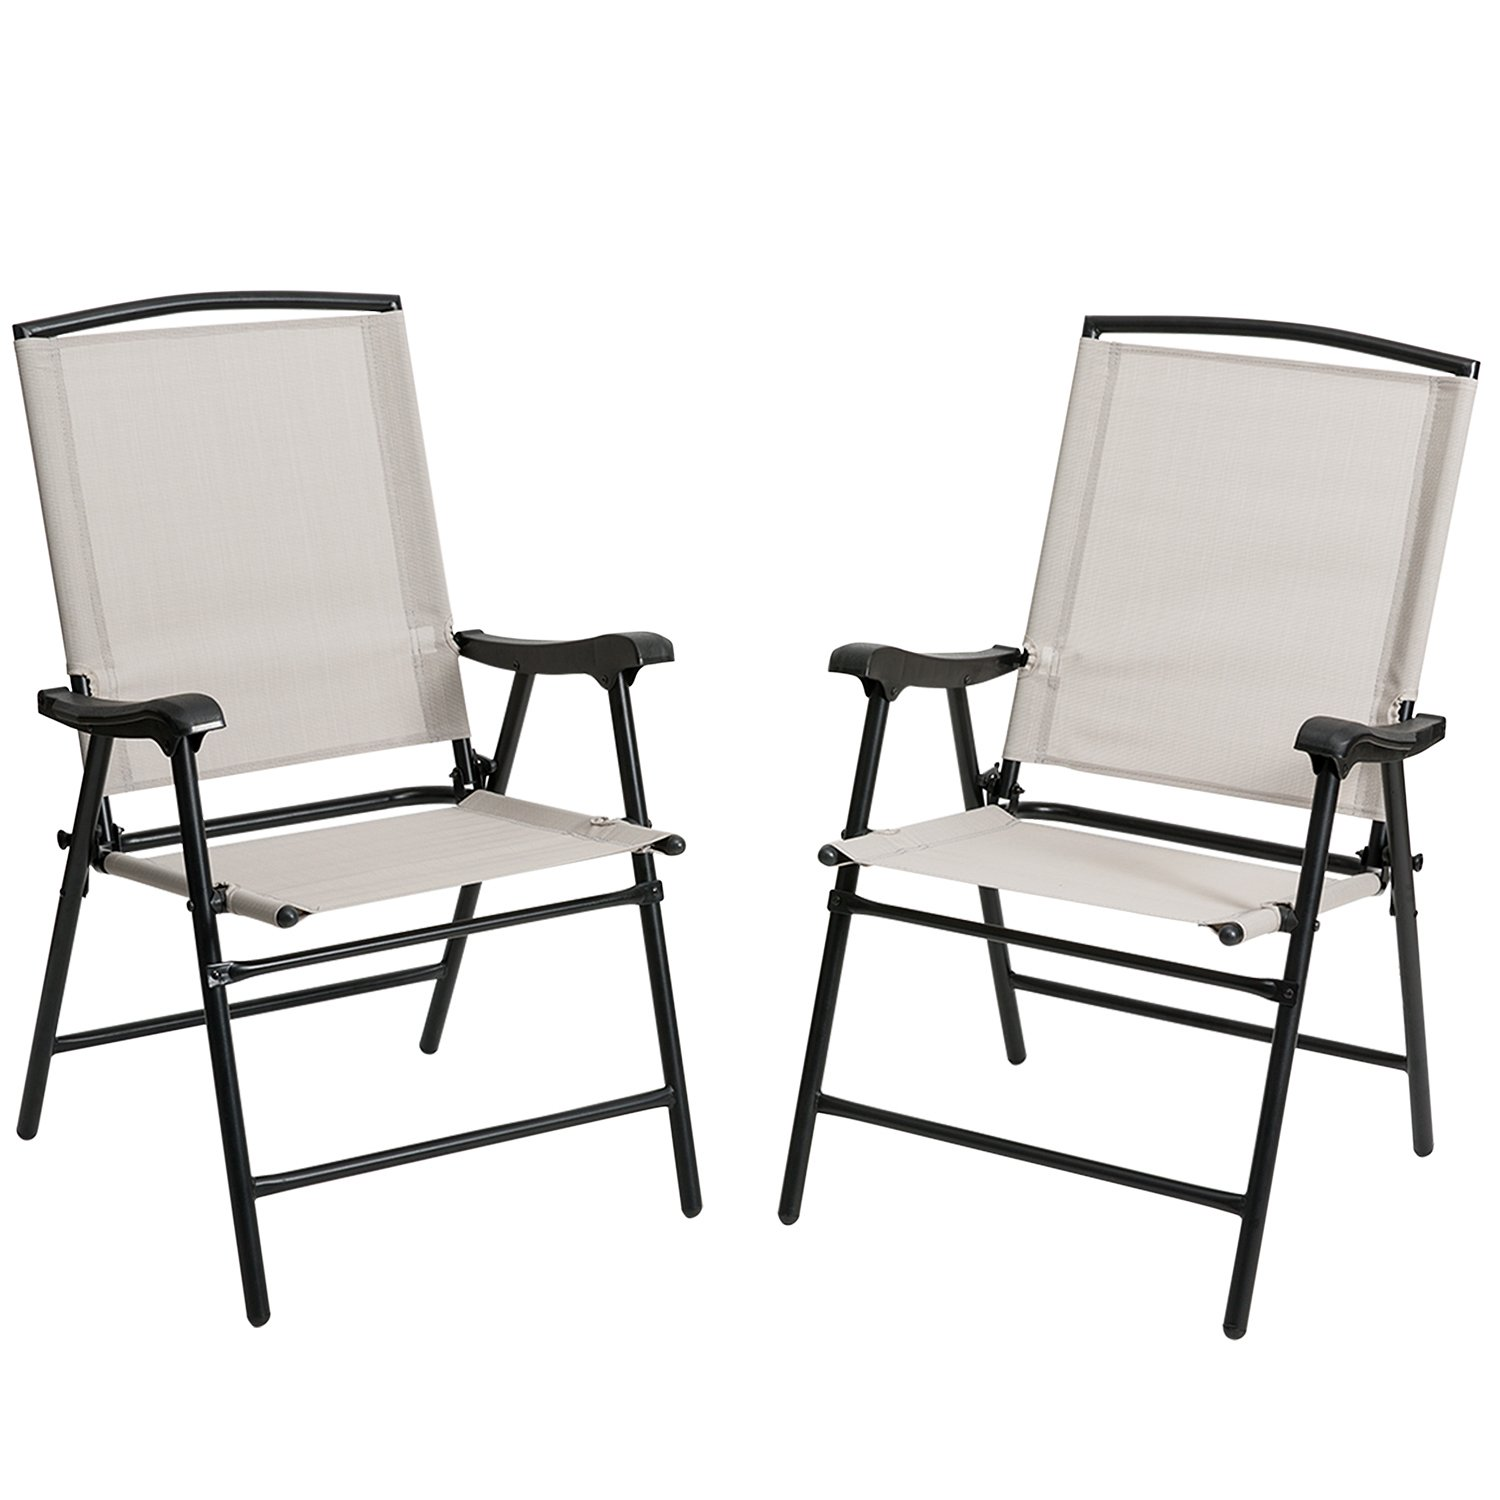 ARTALL Foldable Fabric Outdoor/Indoor Sling Chair, Portable Patio Balcony Leisure Dining Large Chair, Set of 2, Beige